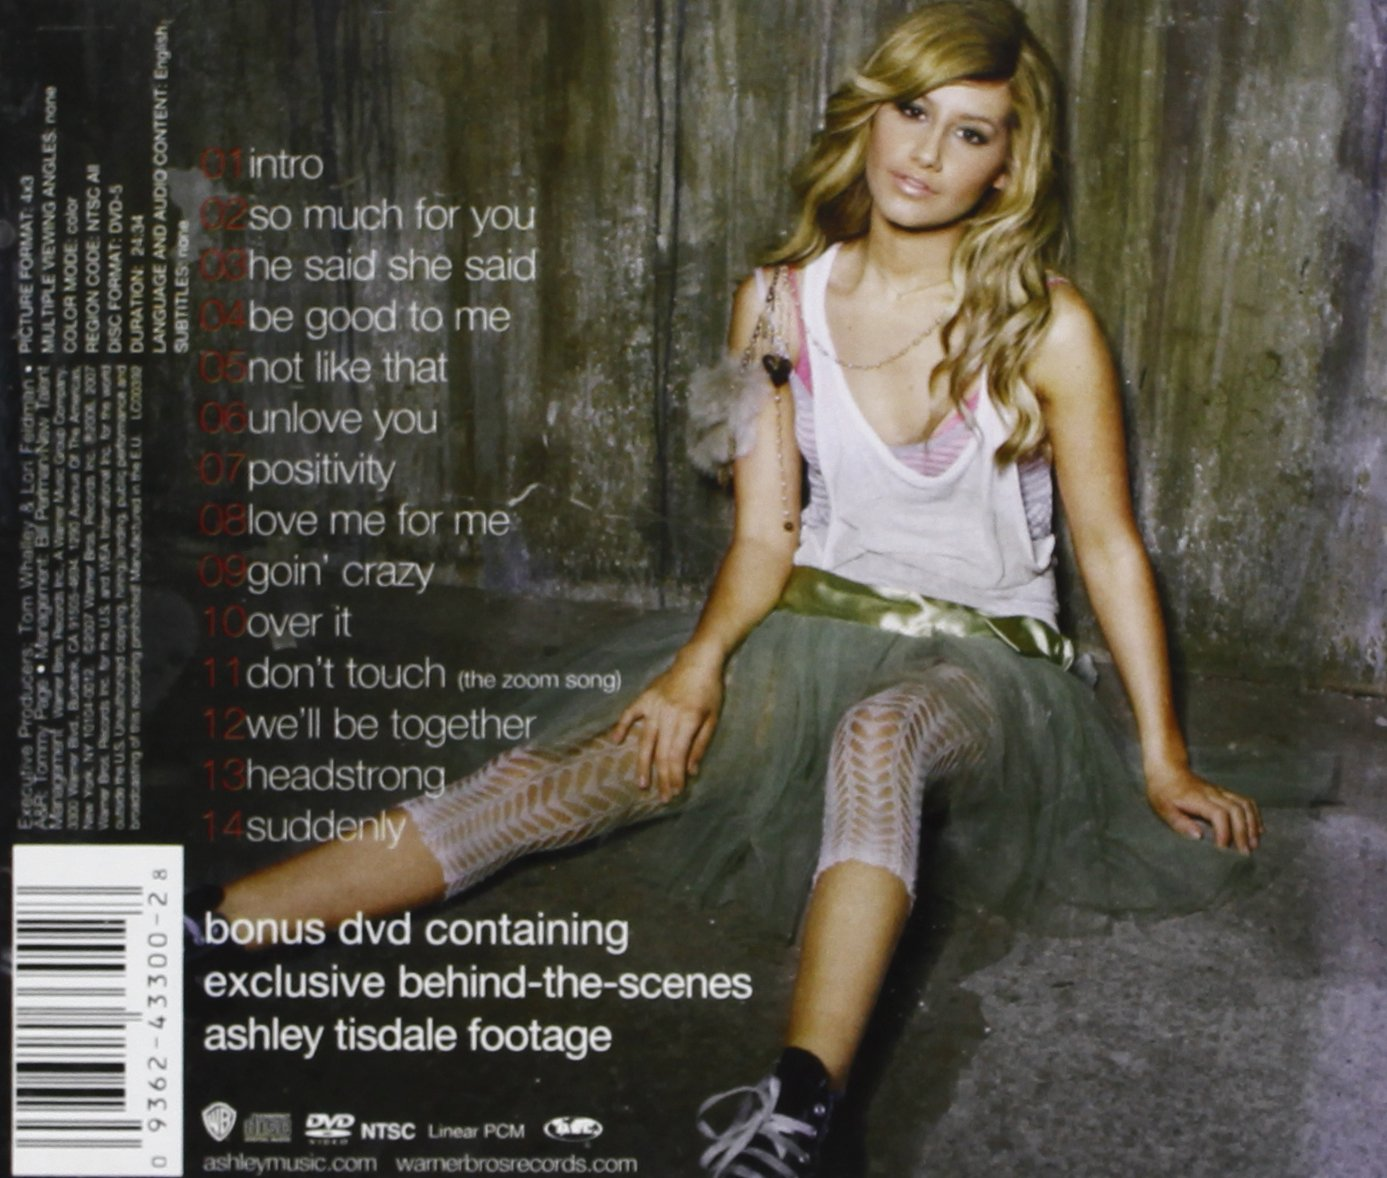 SO ASHLEY BAIXAR MUCH FOR YOU TISDALE -